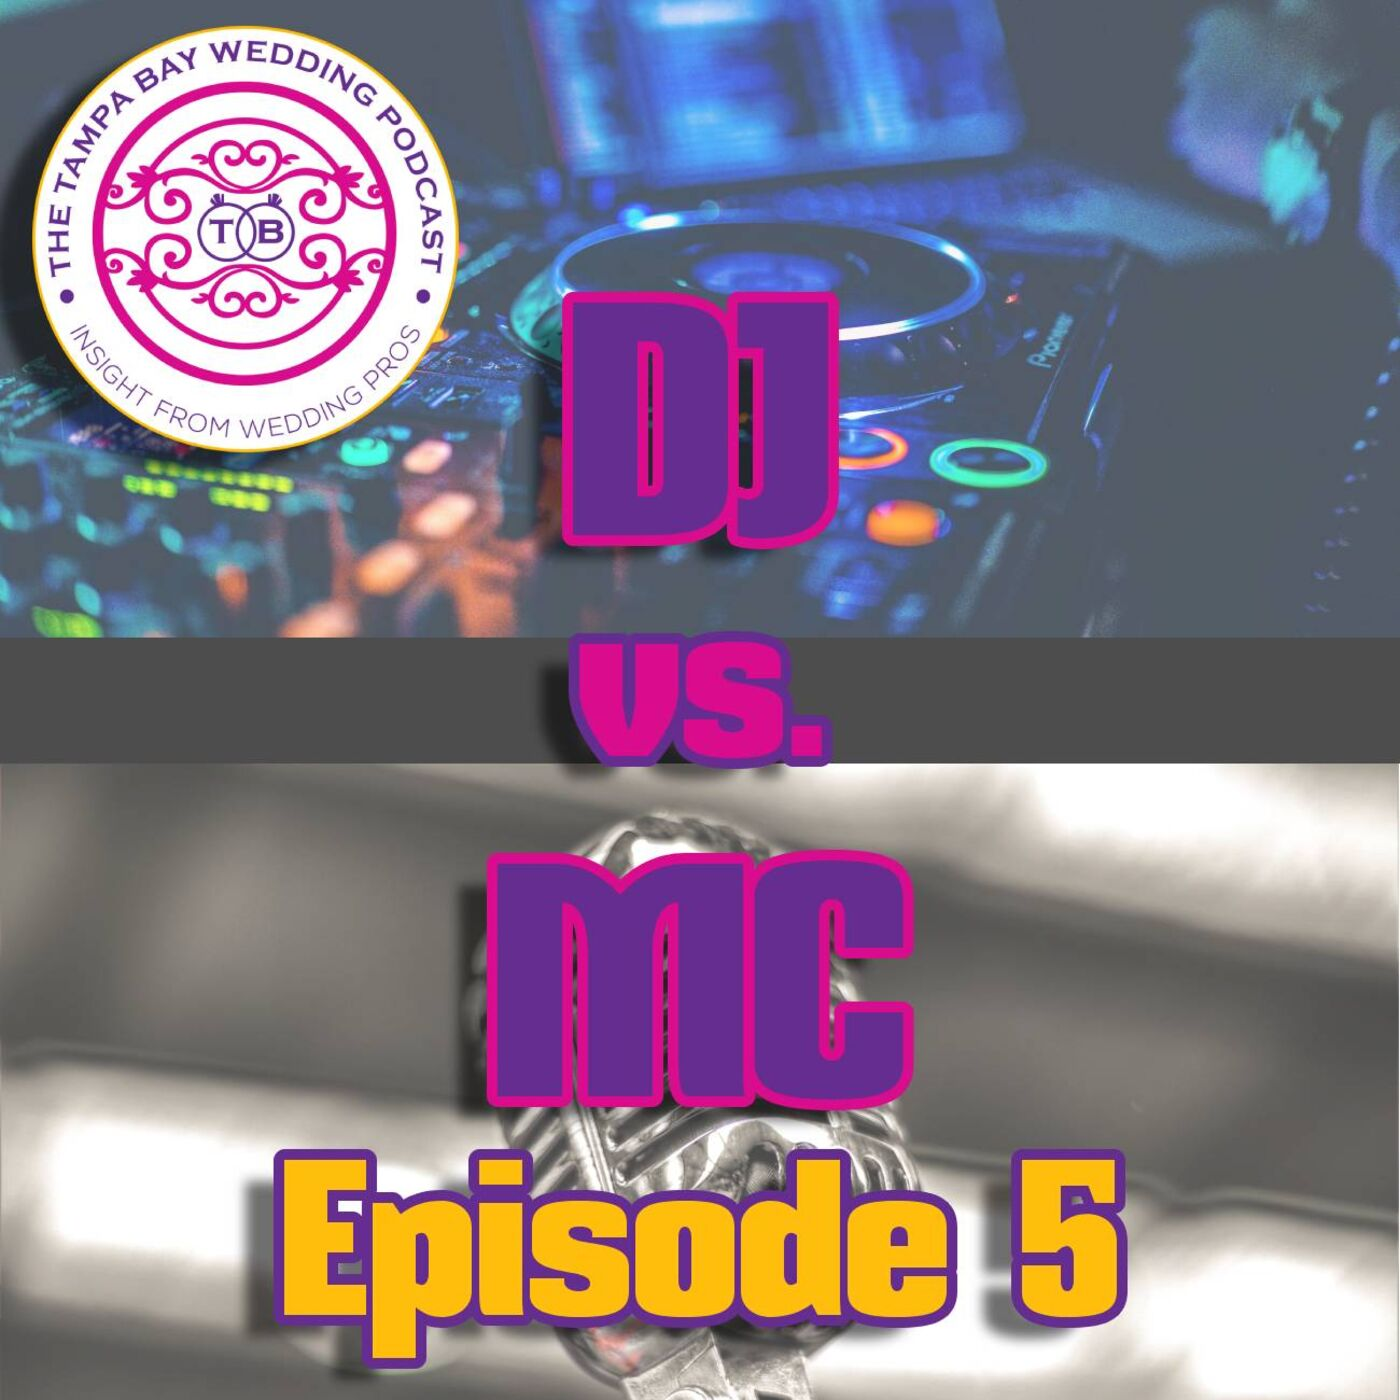 The Tampa Bay Wedding Podcast, Episode 5: DJ versus MC, What's The Difference?